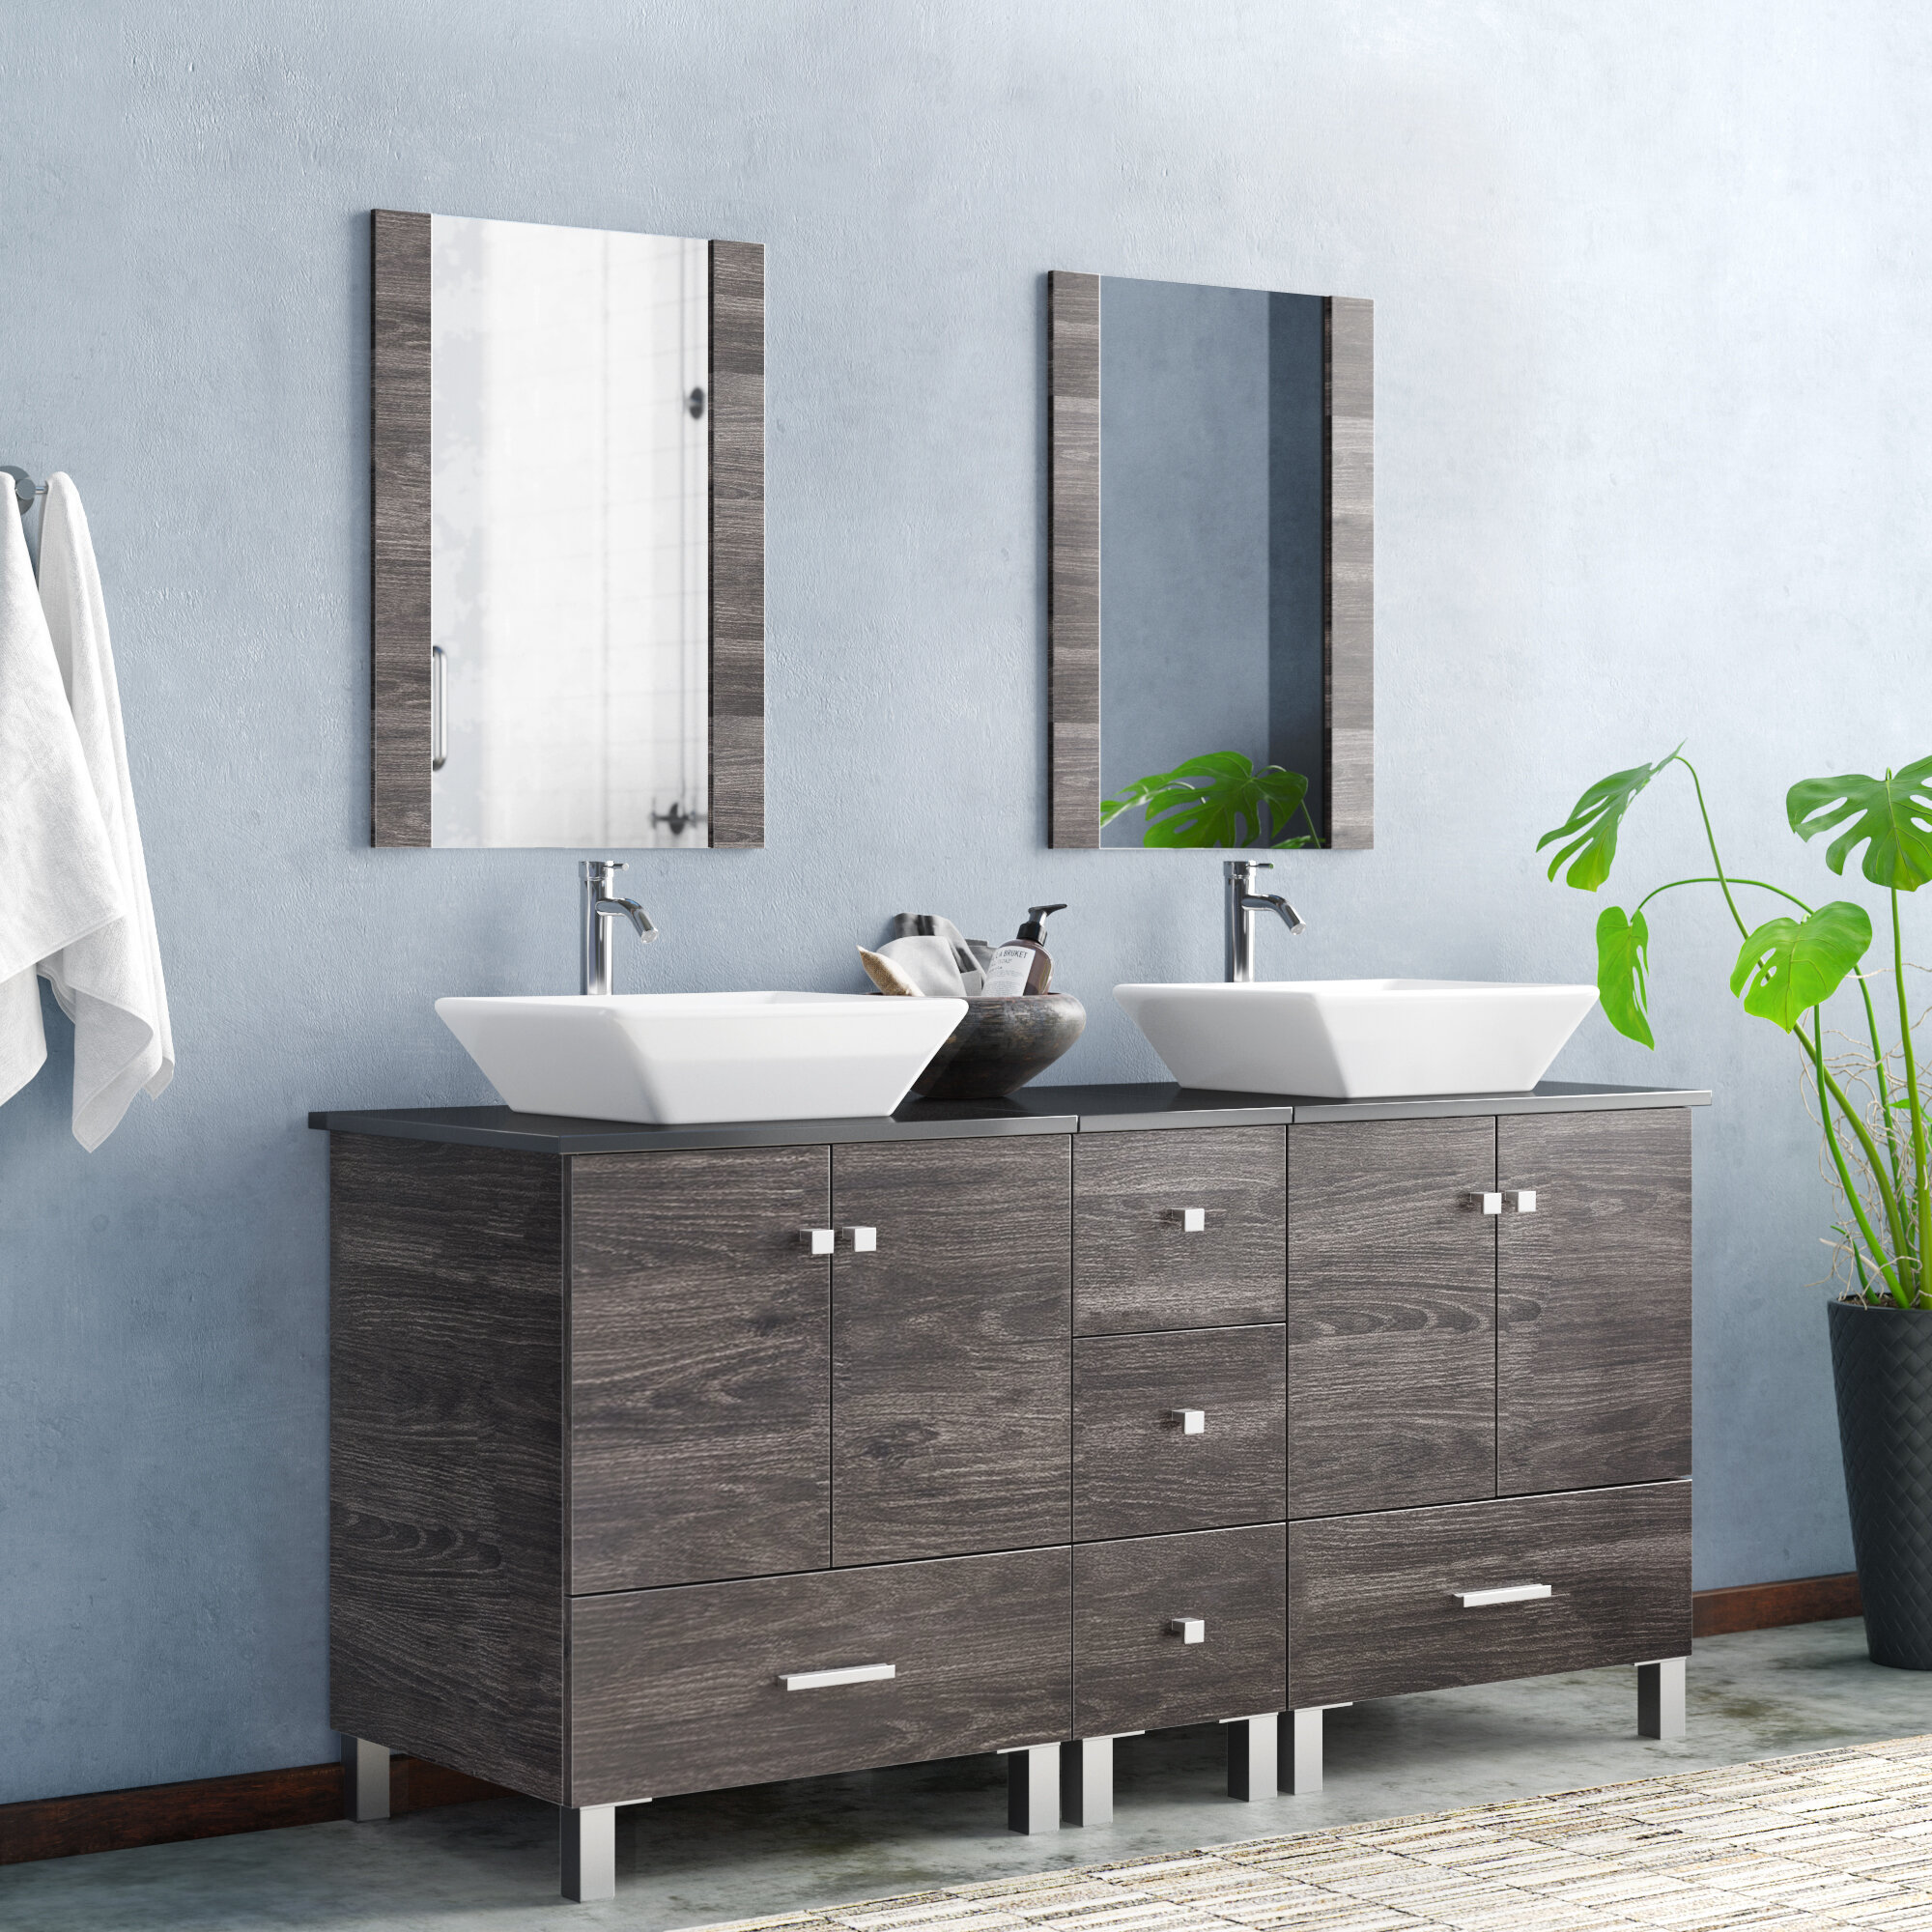 Orren Ellis Barbonne 60 Double Bathroom Vanity With Mirror Reviews Wayfair